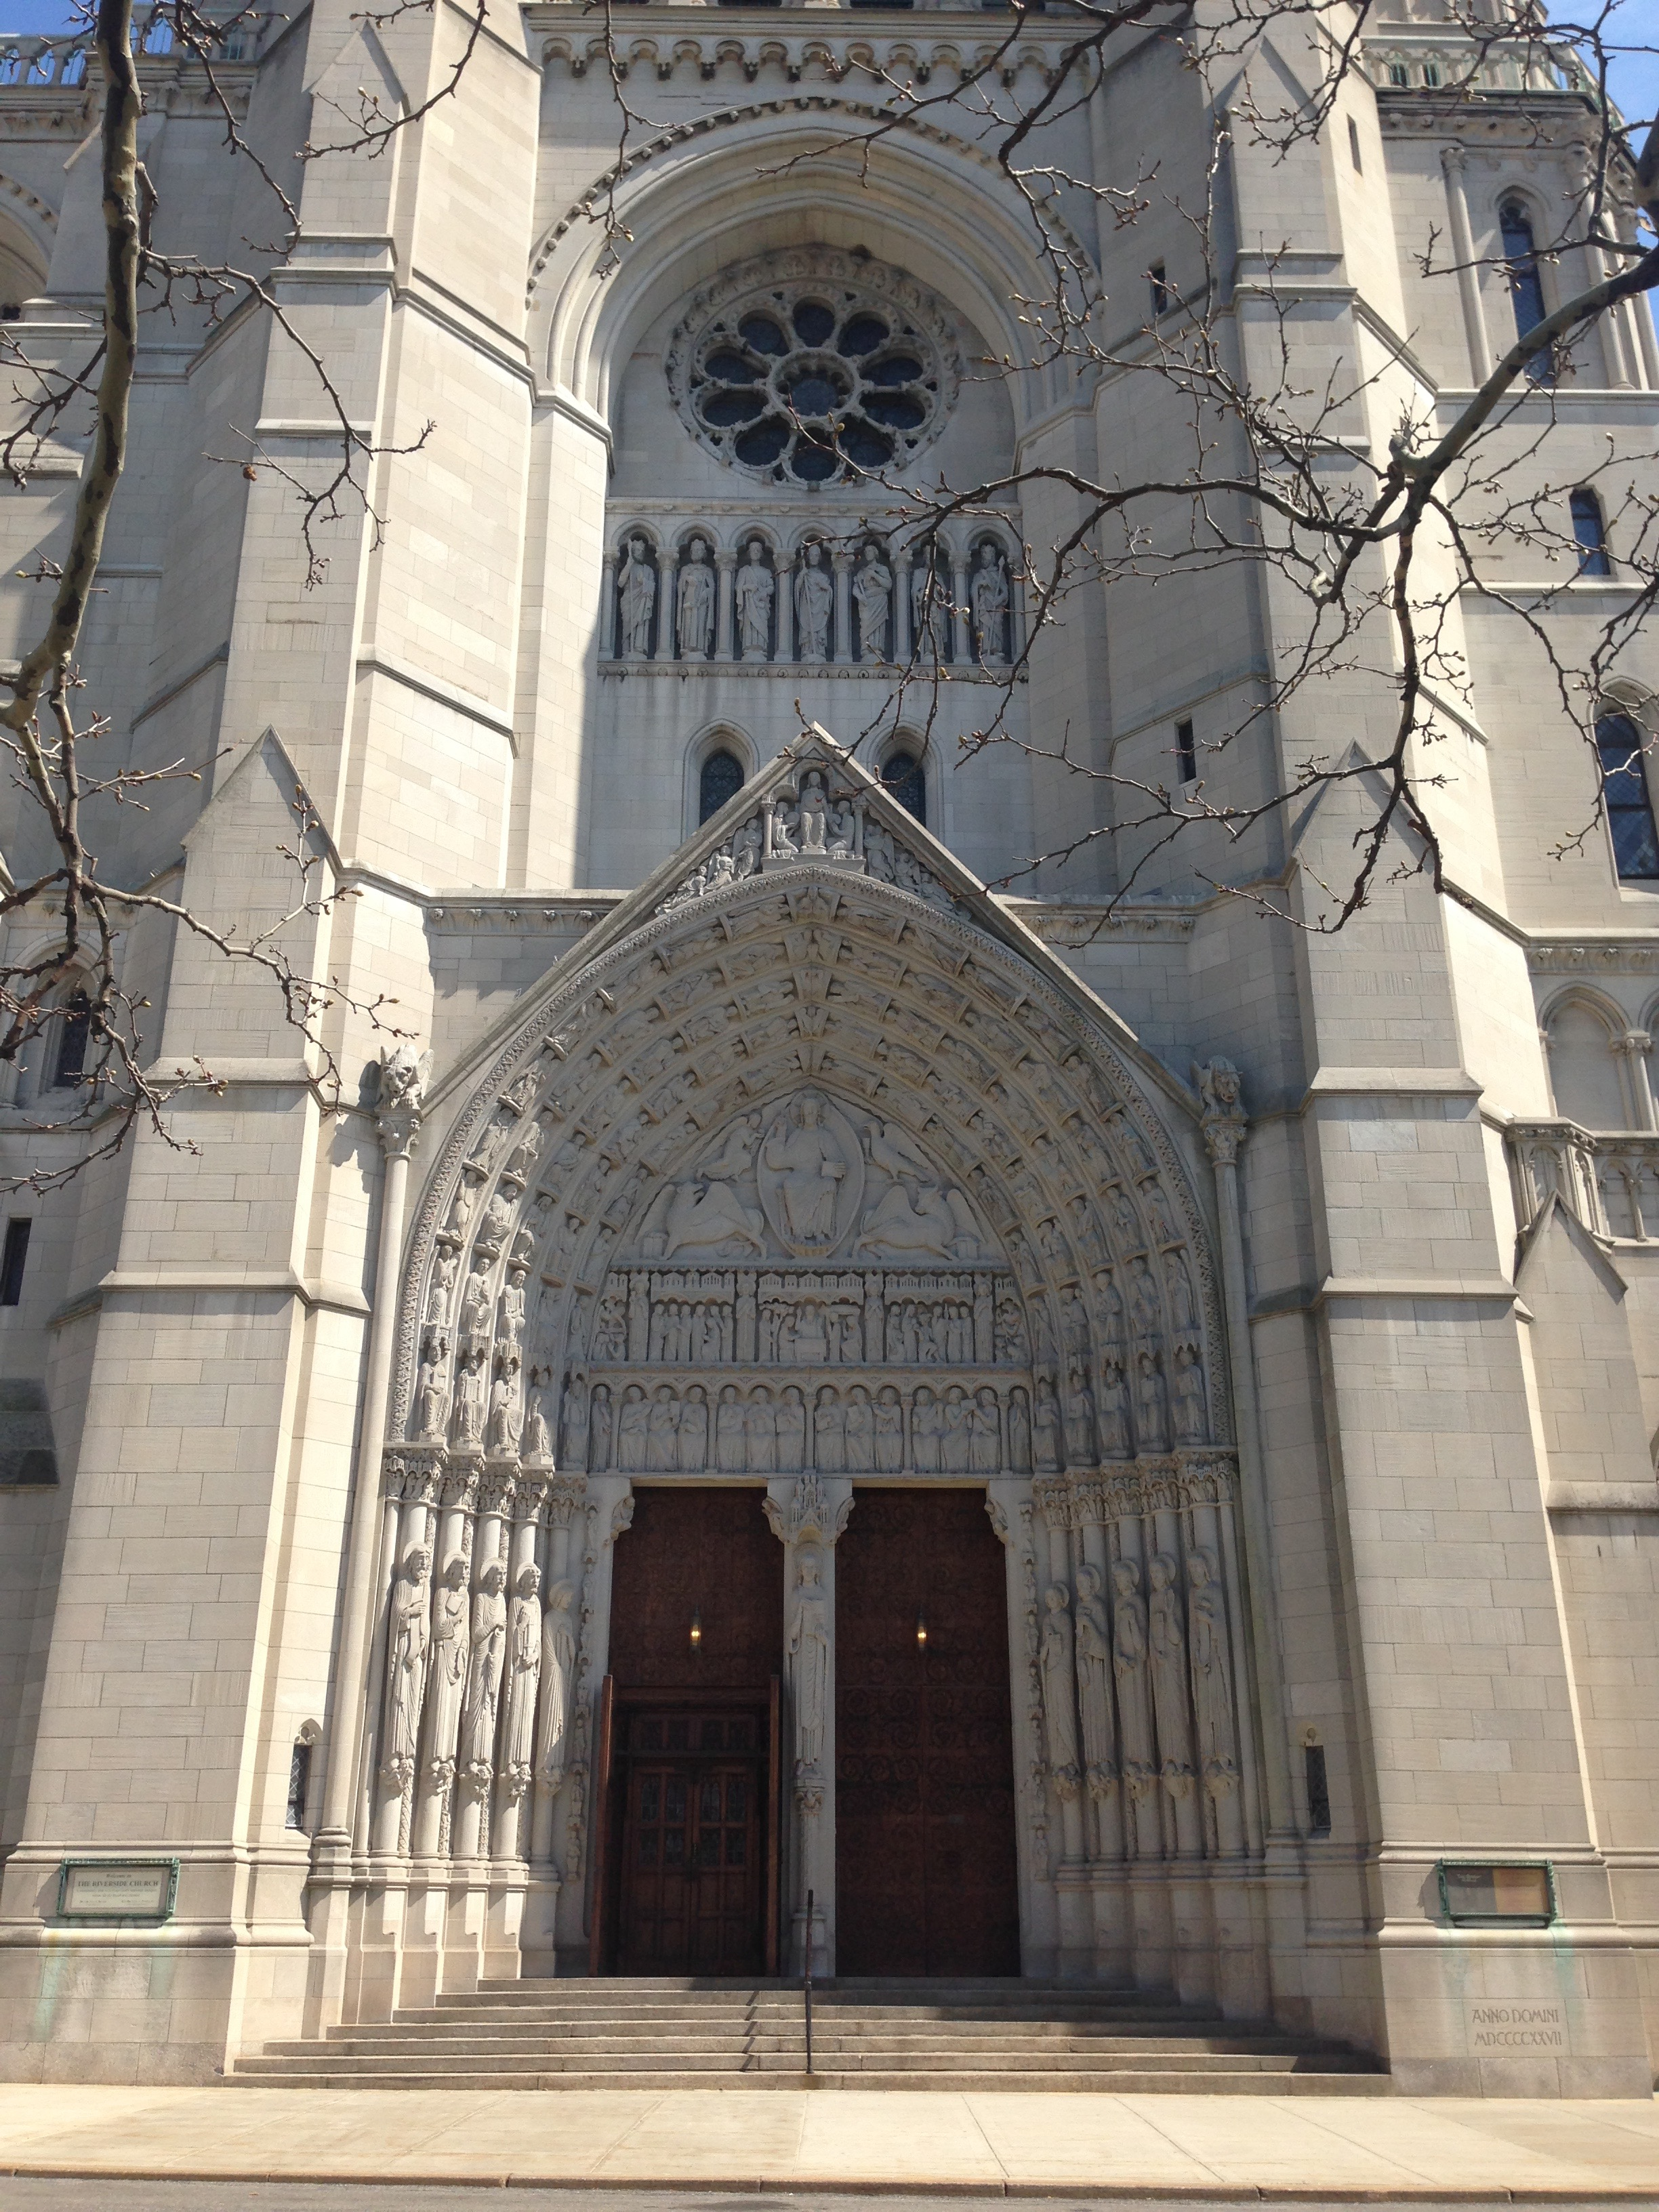 The beautiful Riverside Church.